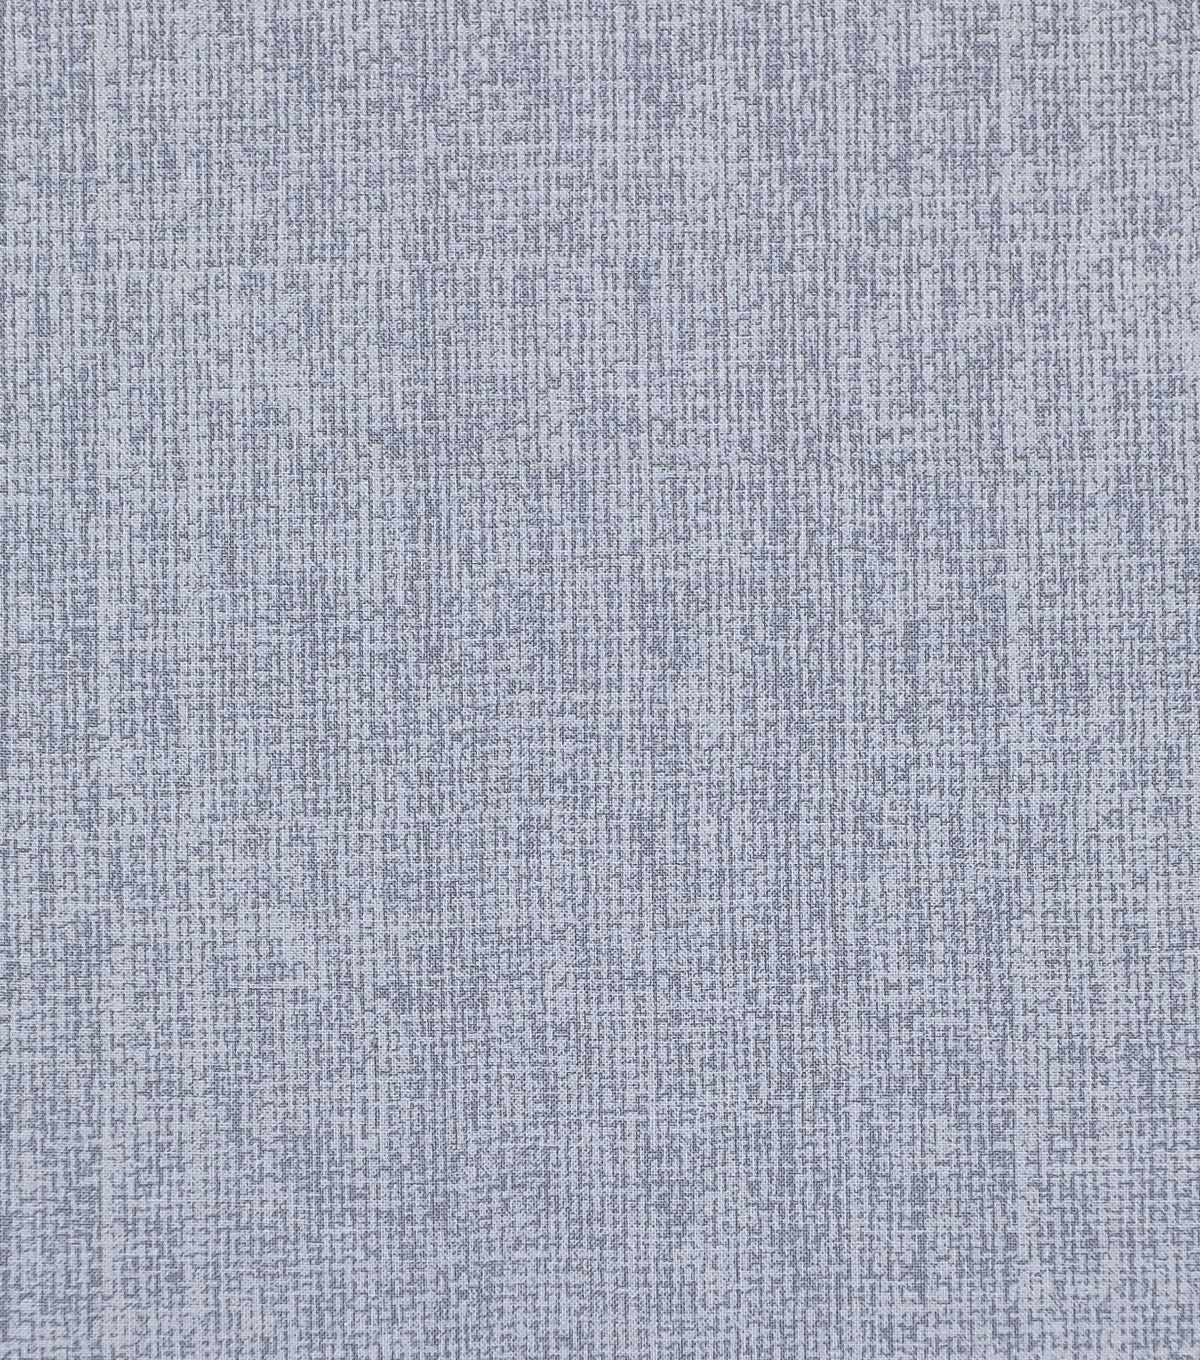 Keepsake Calico Cotton Fabric-White Basket Weave